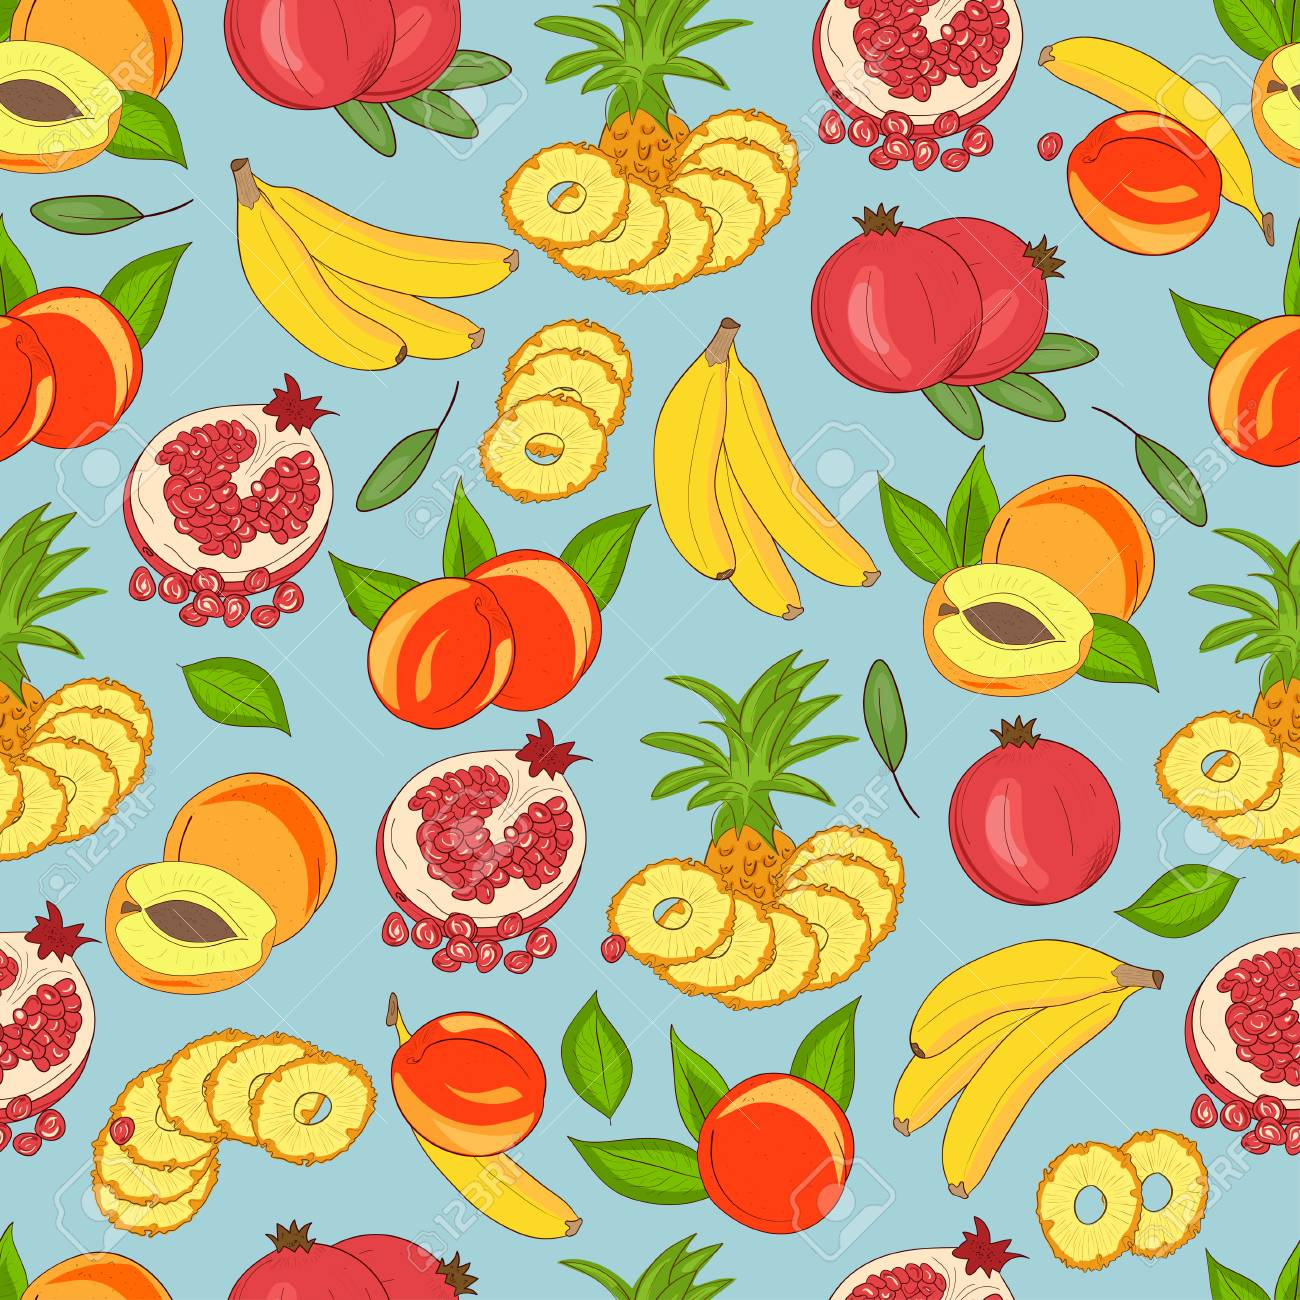 background wallpaper seamless pineapple banana pomegranate royalty free cliparts vectors and stock illustration image 113563019 background wallpaper seamless pineapple banana pomegranate